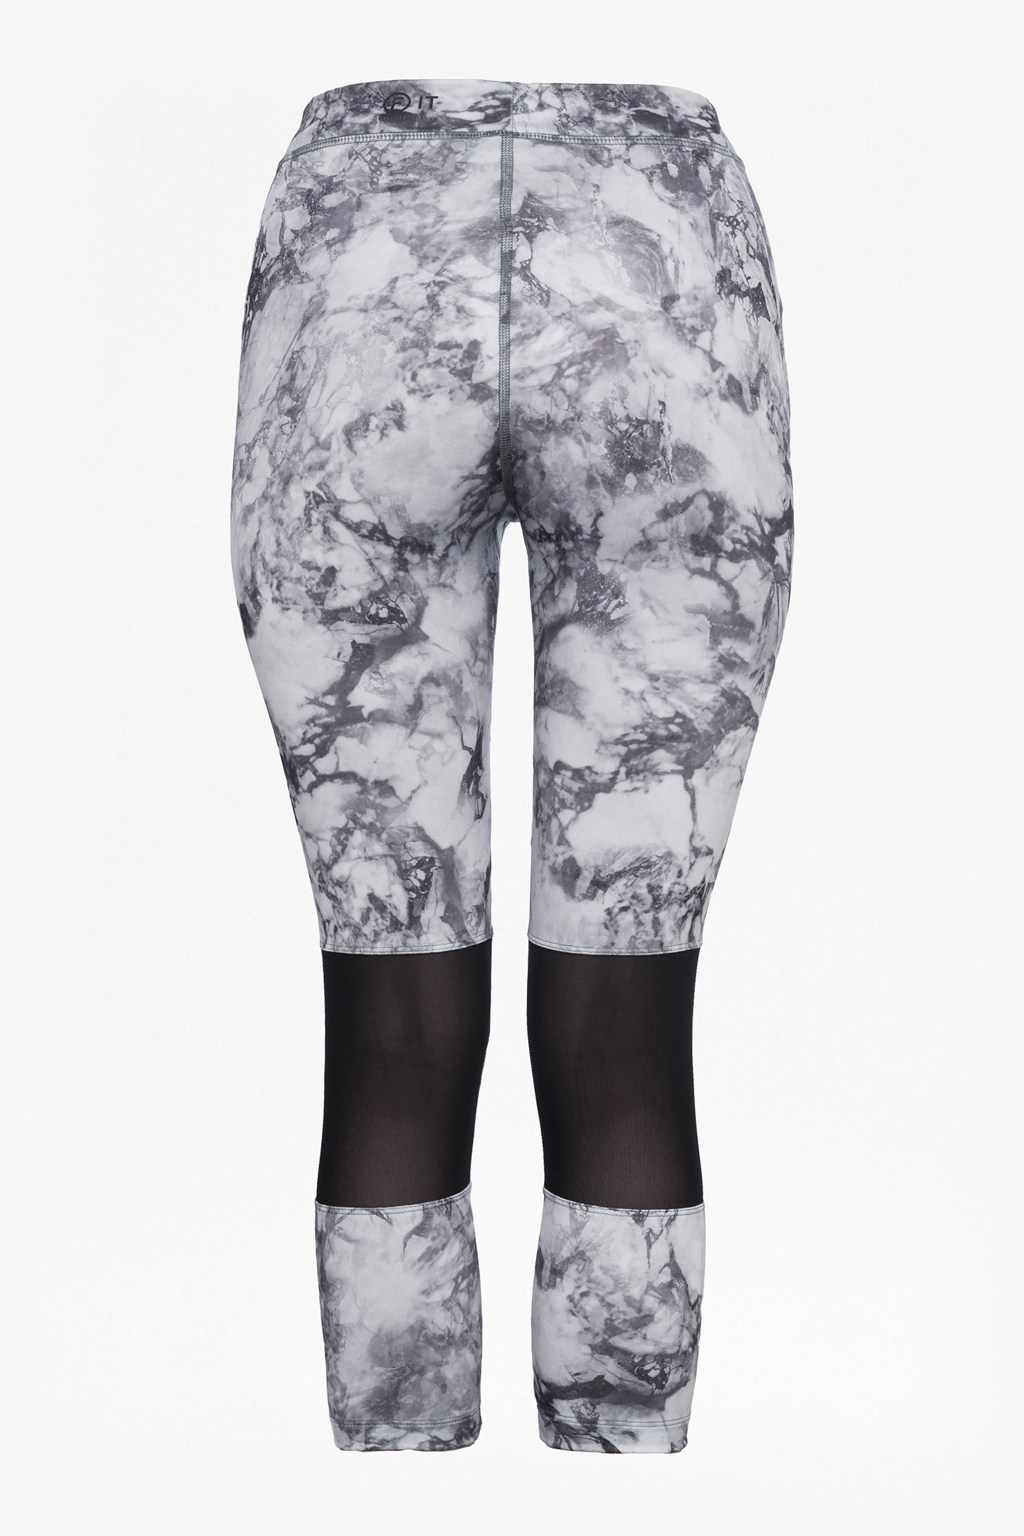 361e77386379c1 loading images... Comfort Stretch Marble Print Cropped Performance Leggings